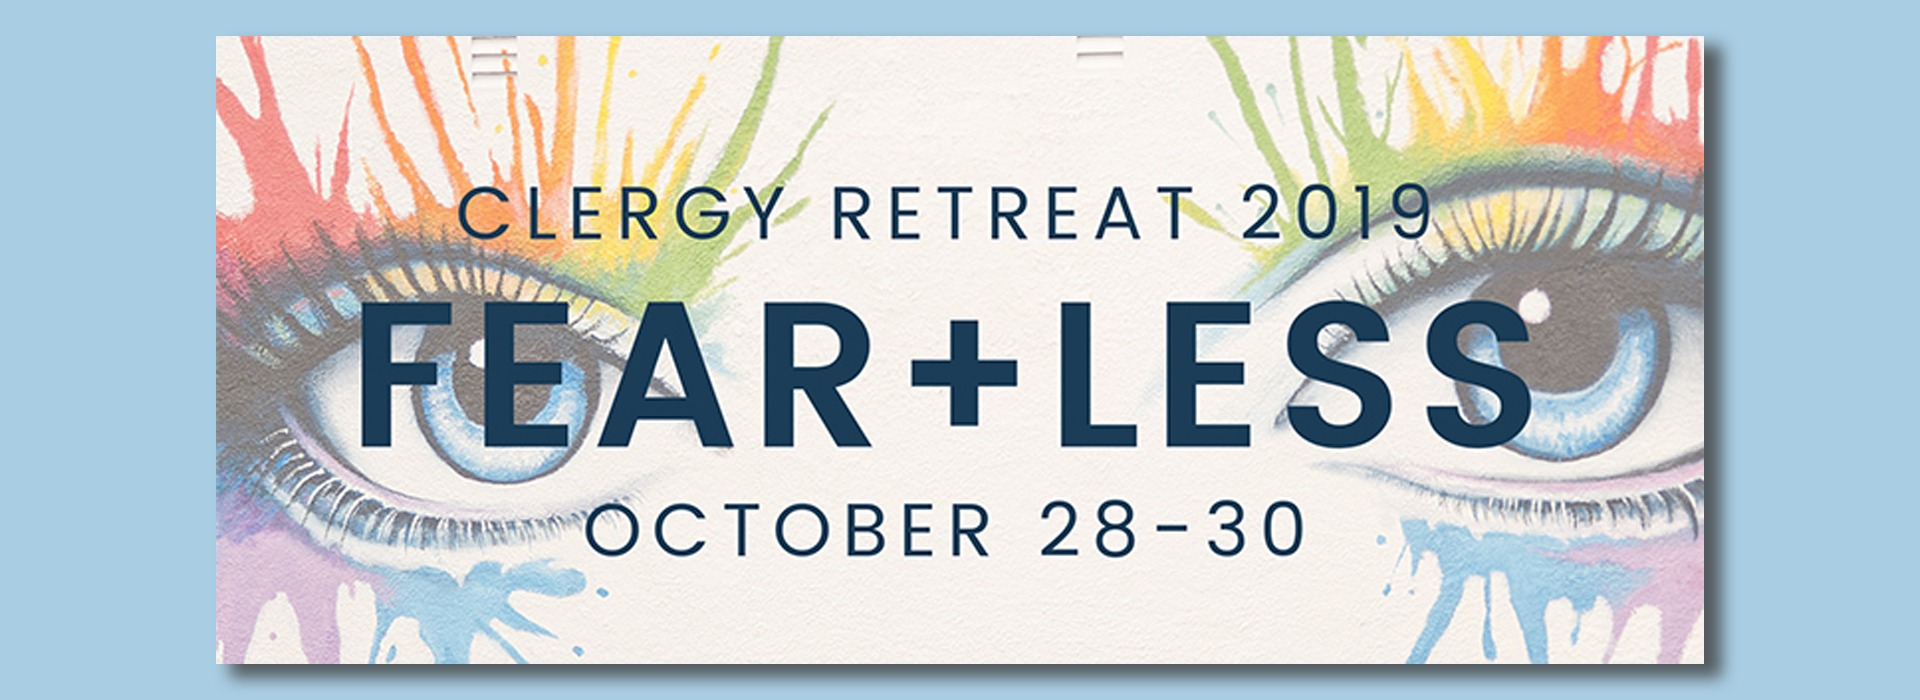 clergy retreat logo